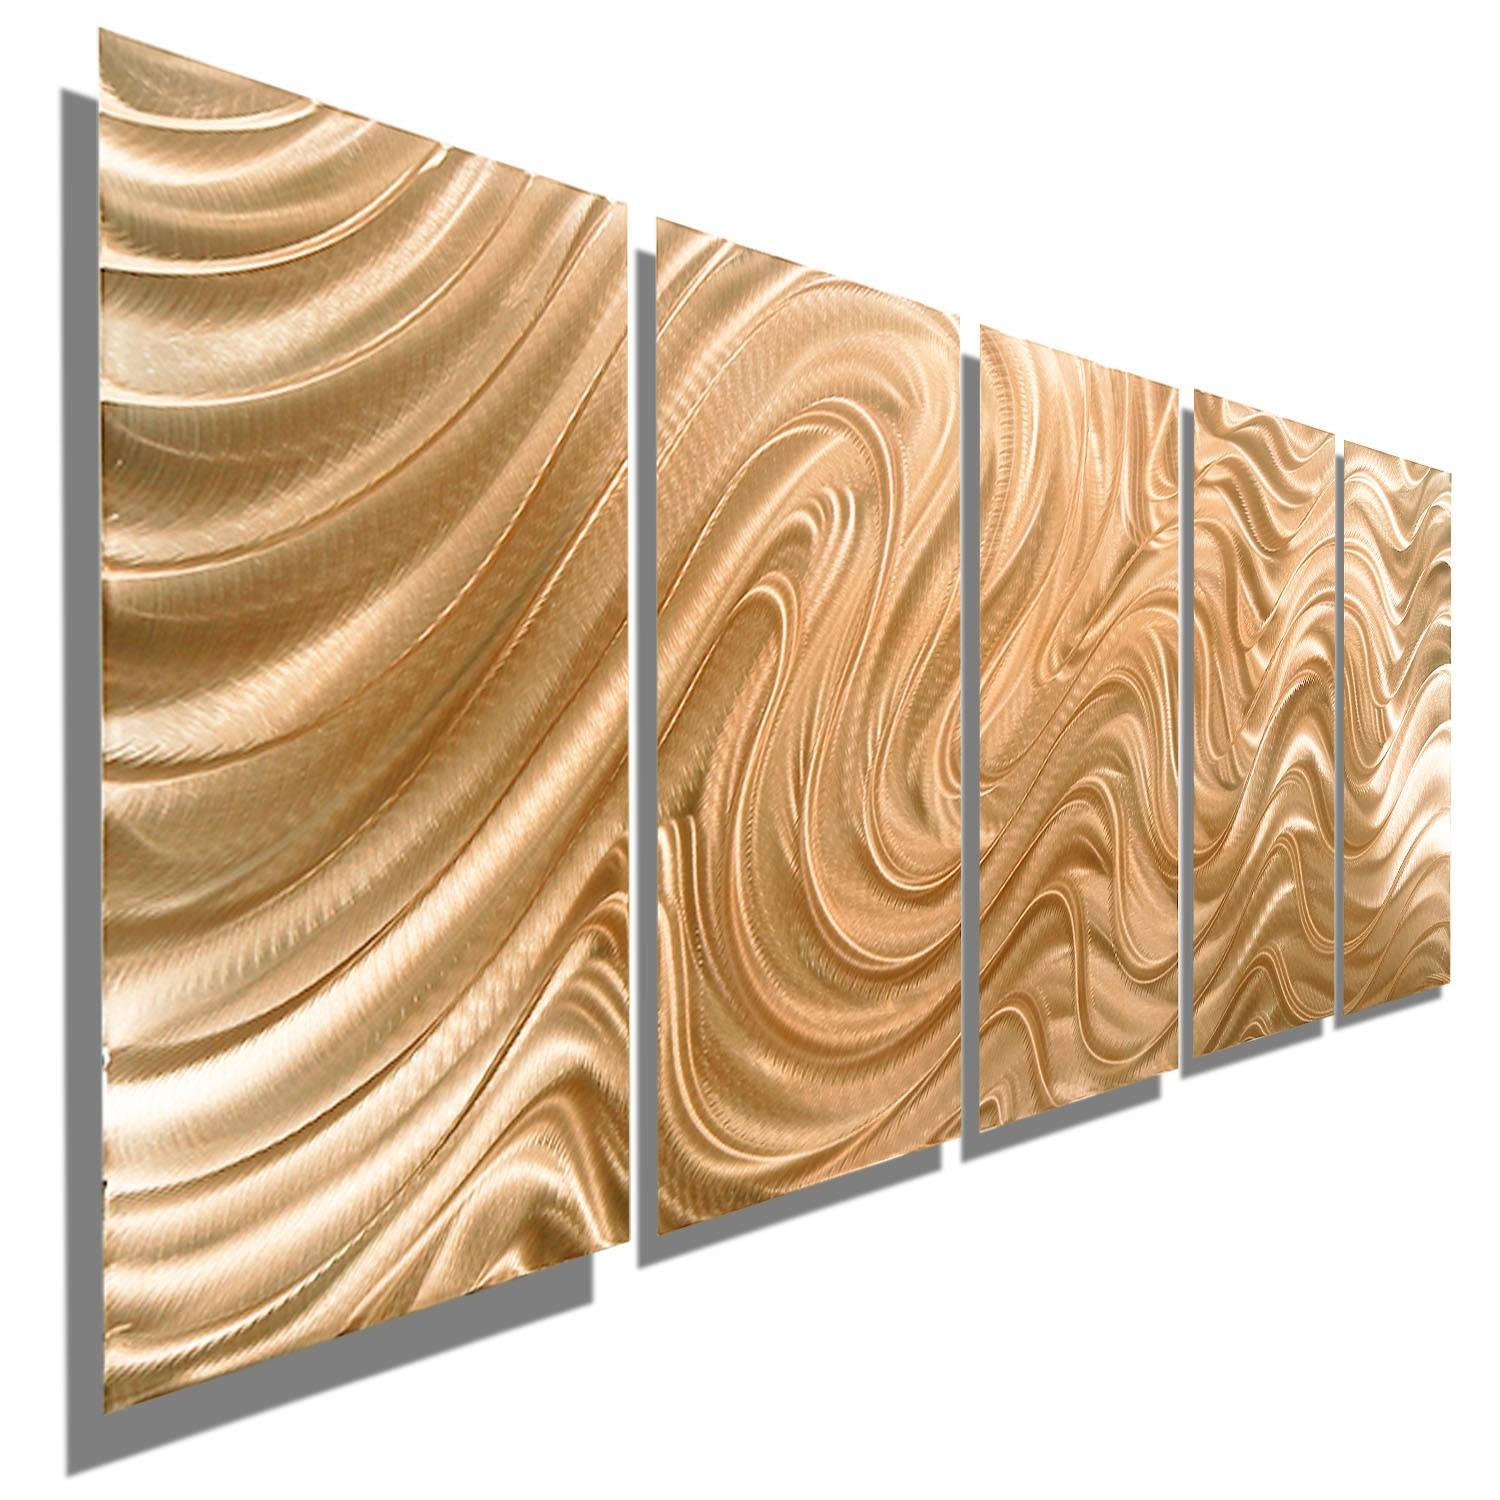 Copper Hypnotic Sands – Copper Abstract Metal Wall Artjon Inside Most Recent Gold Metal Wall Art (View 17 of 20)